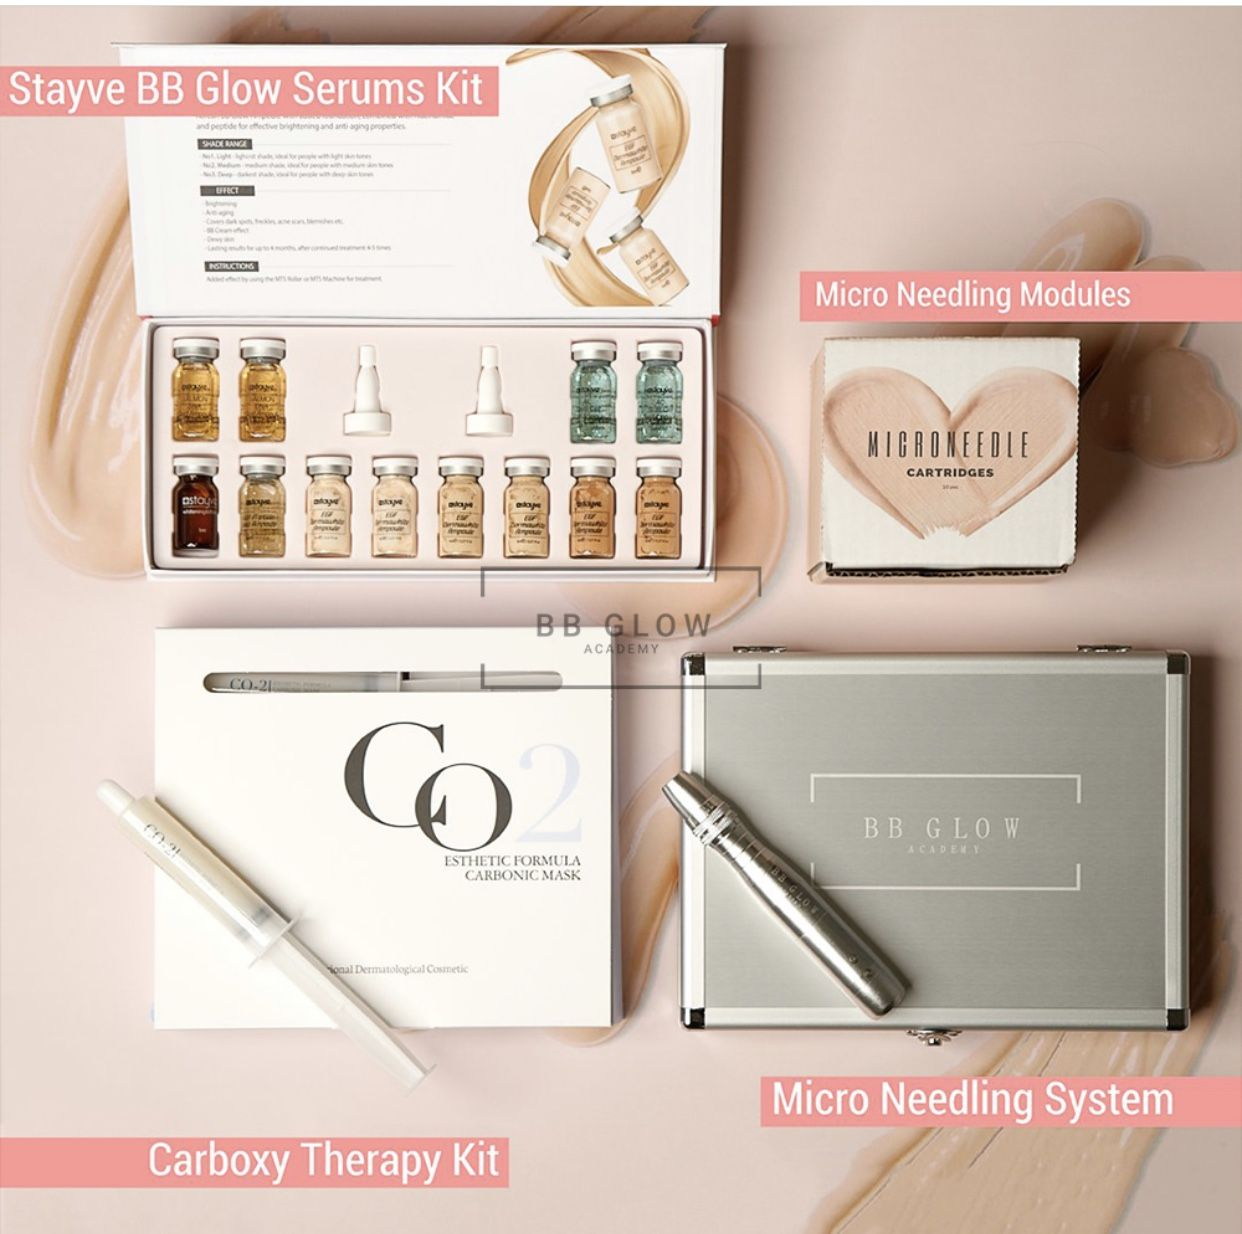 You will receive a Stayve BB Glow Serums Kit, Micro Needling